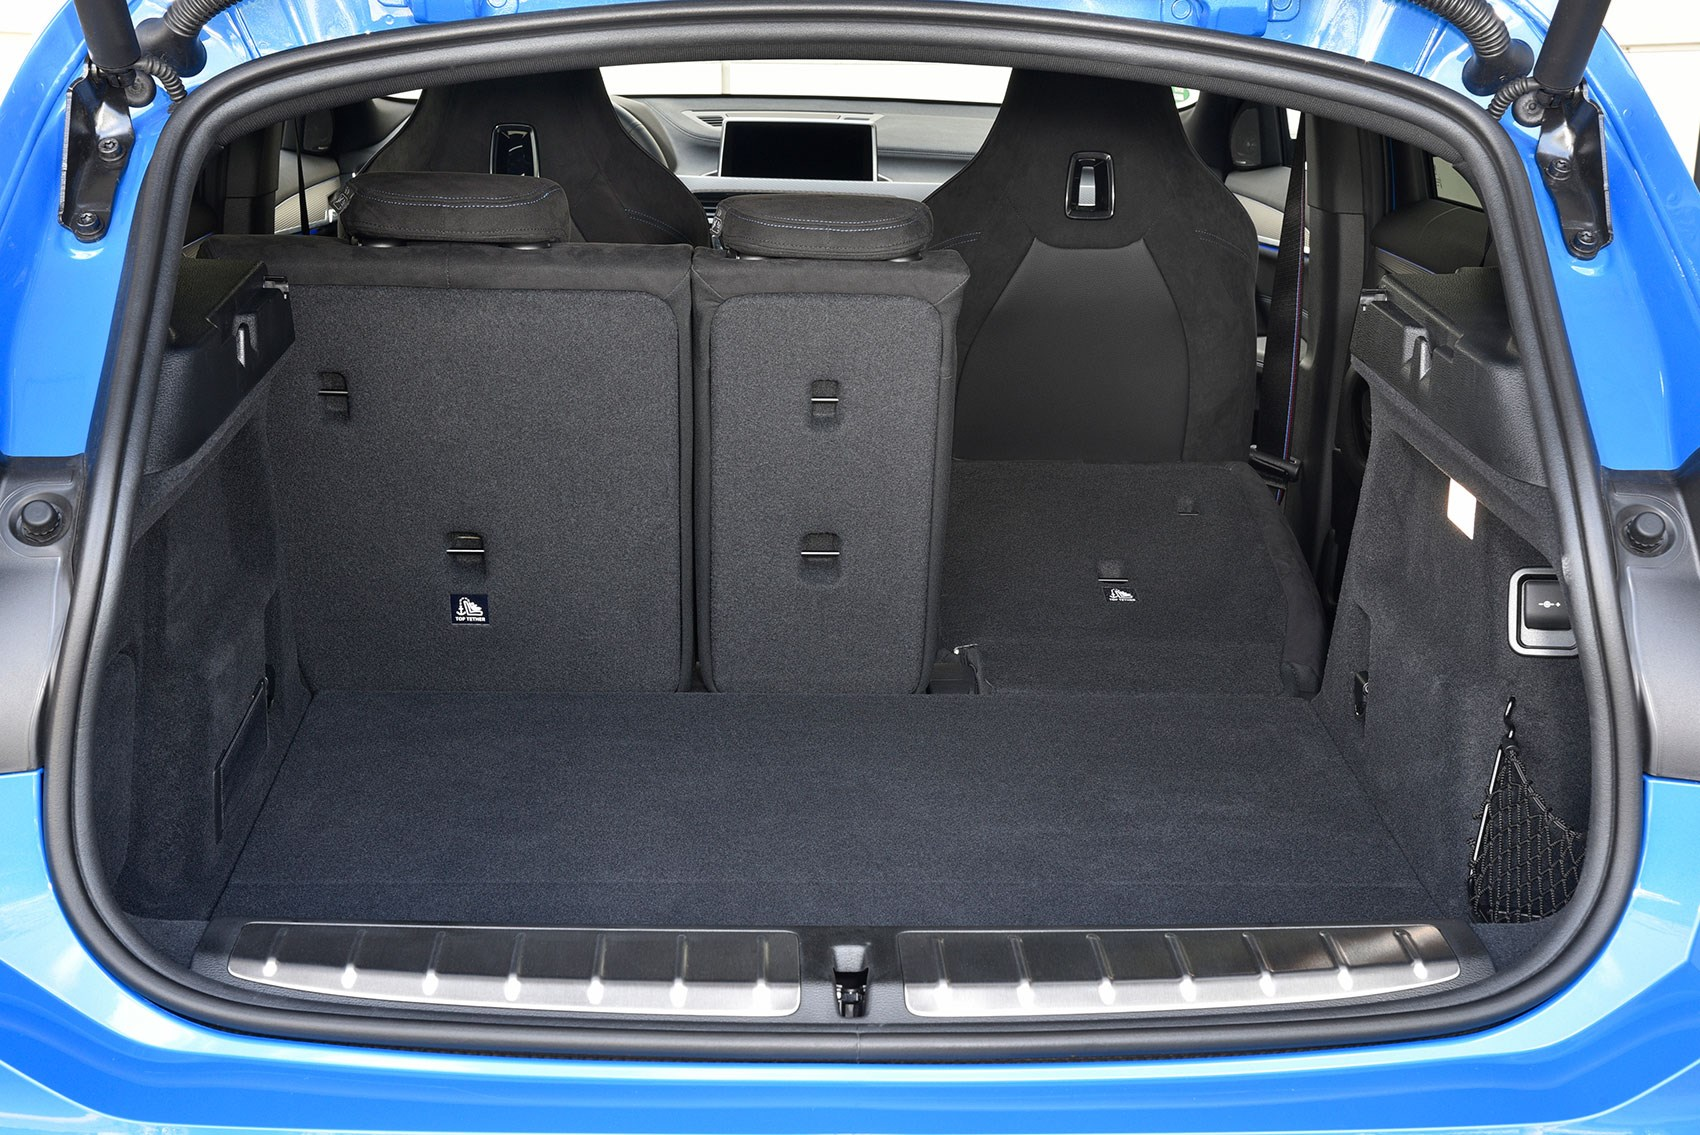 BMW X2 boot space